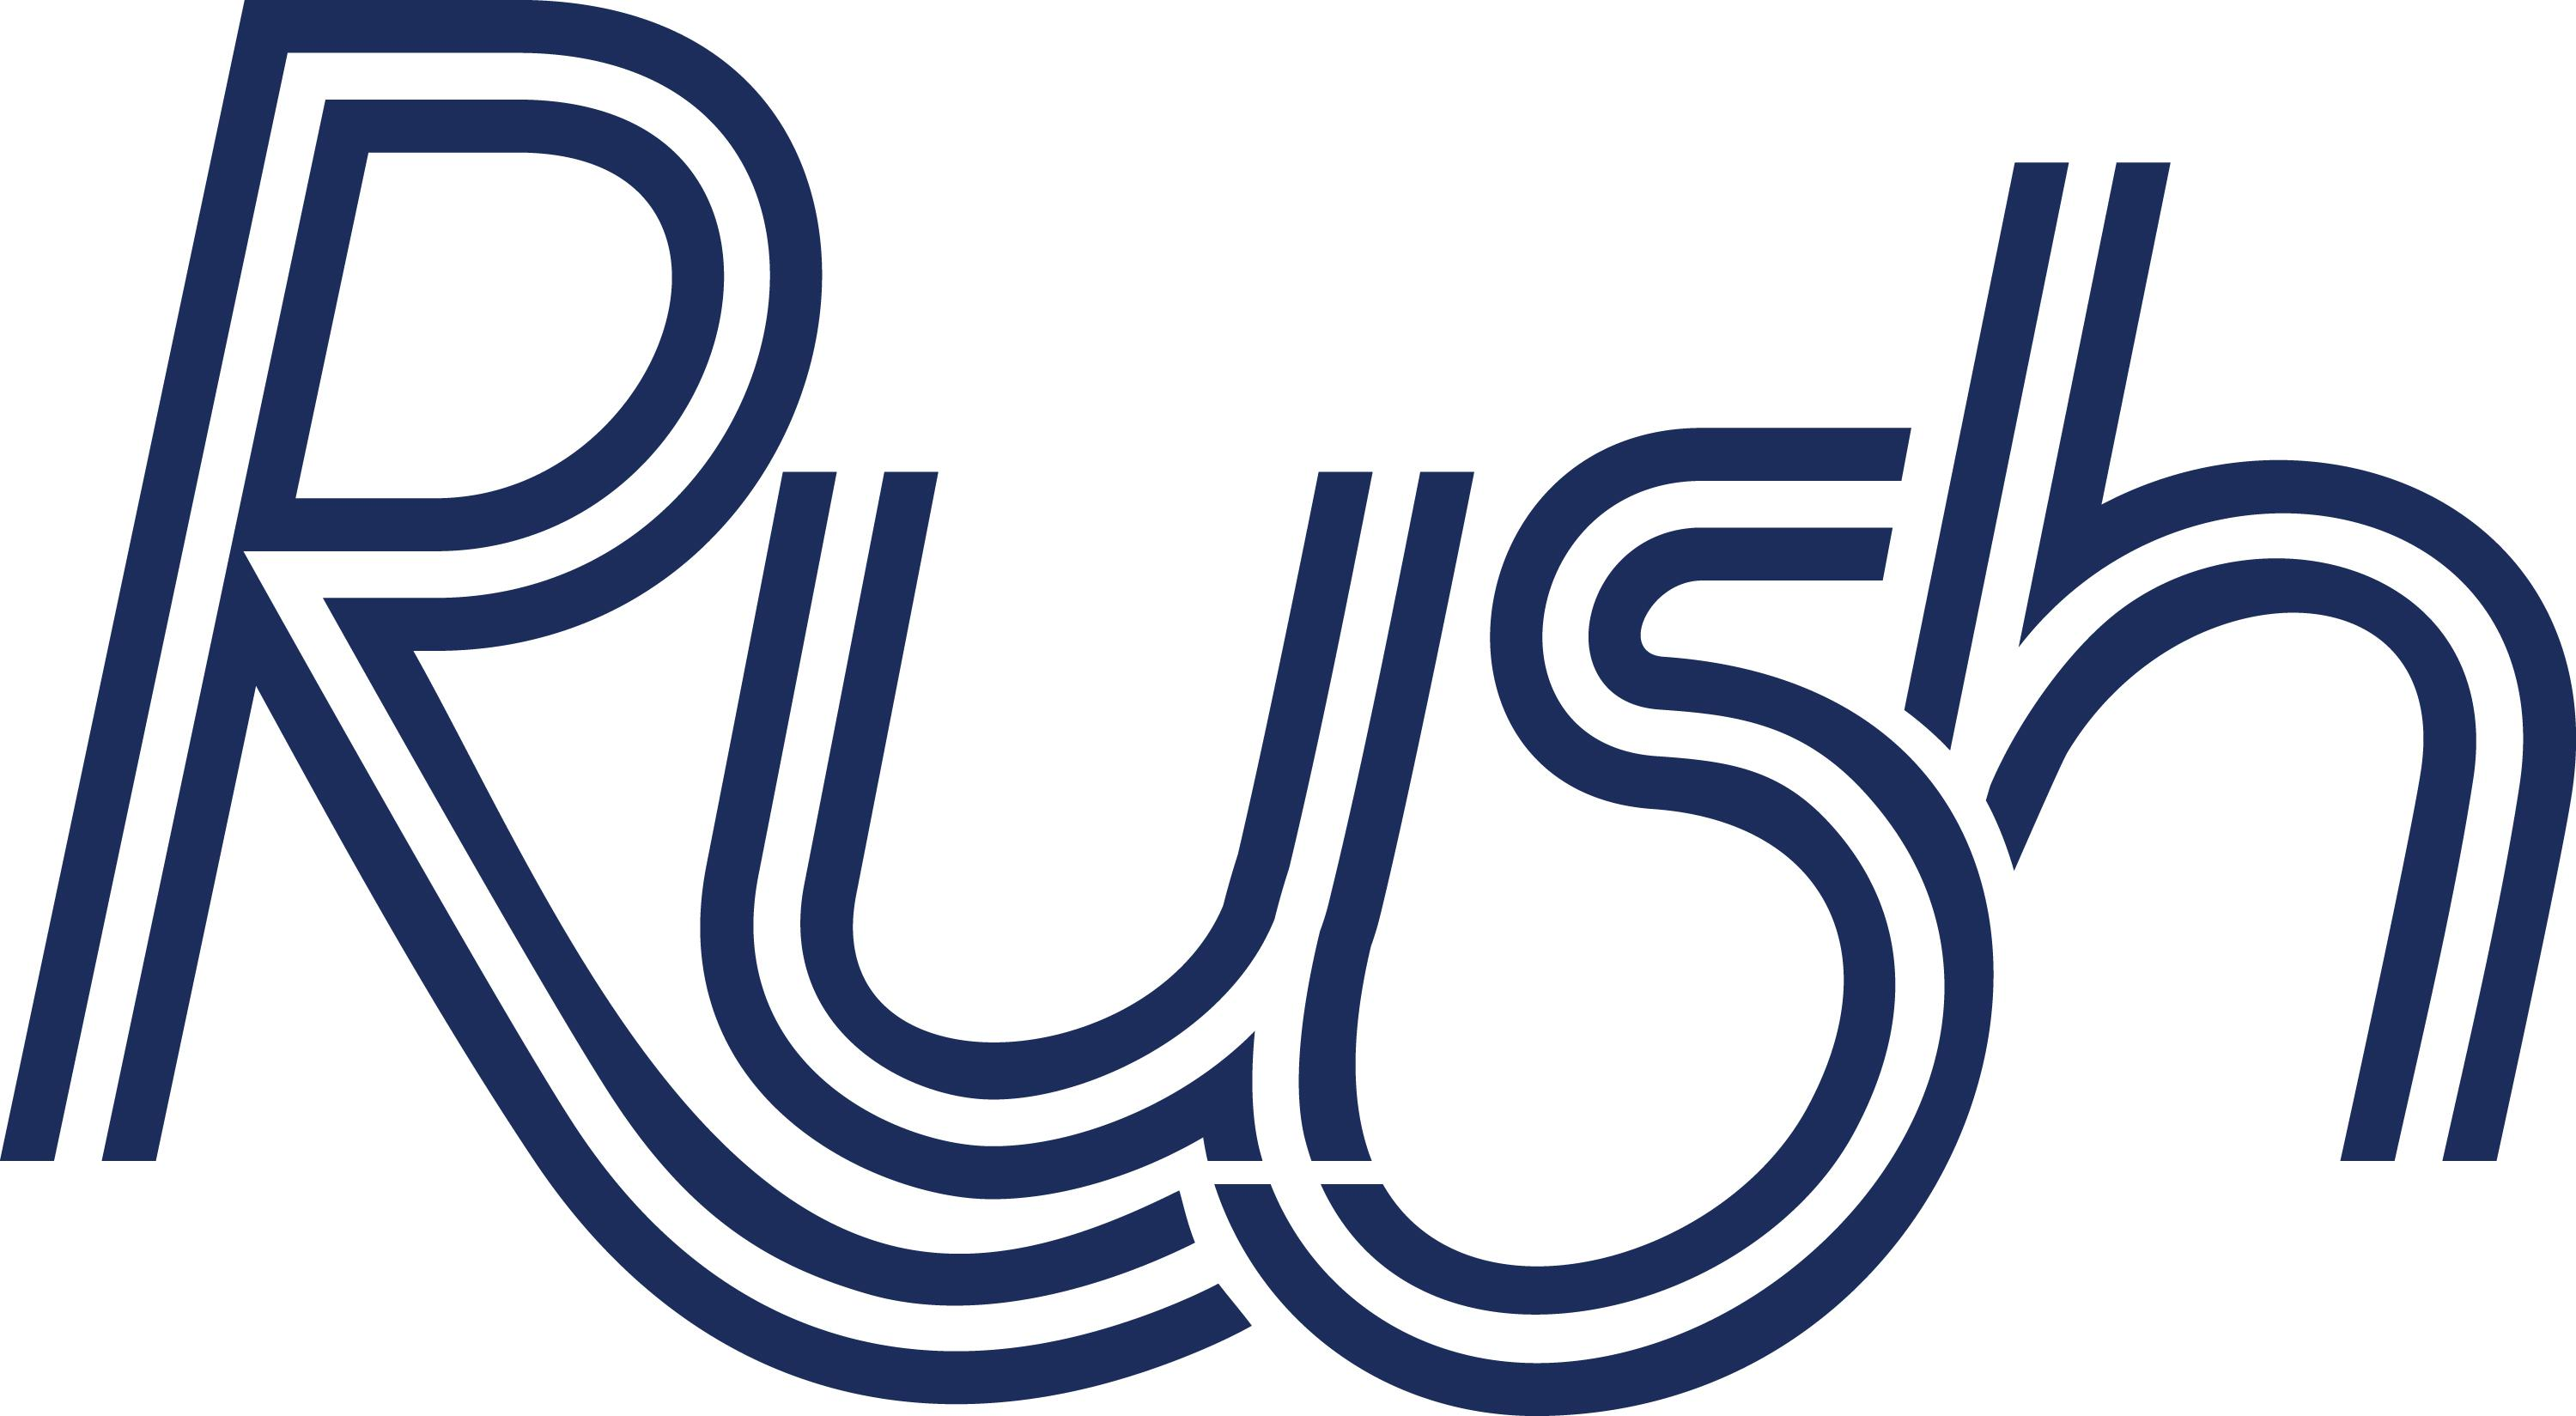 Seeking Internal Medicine physician for Traditional Practice in Meridian, MS - Rush Health Systems